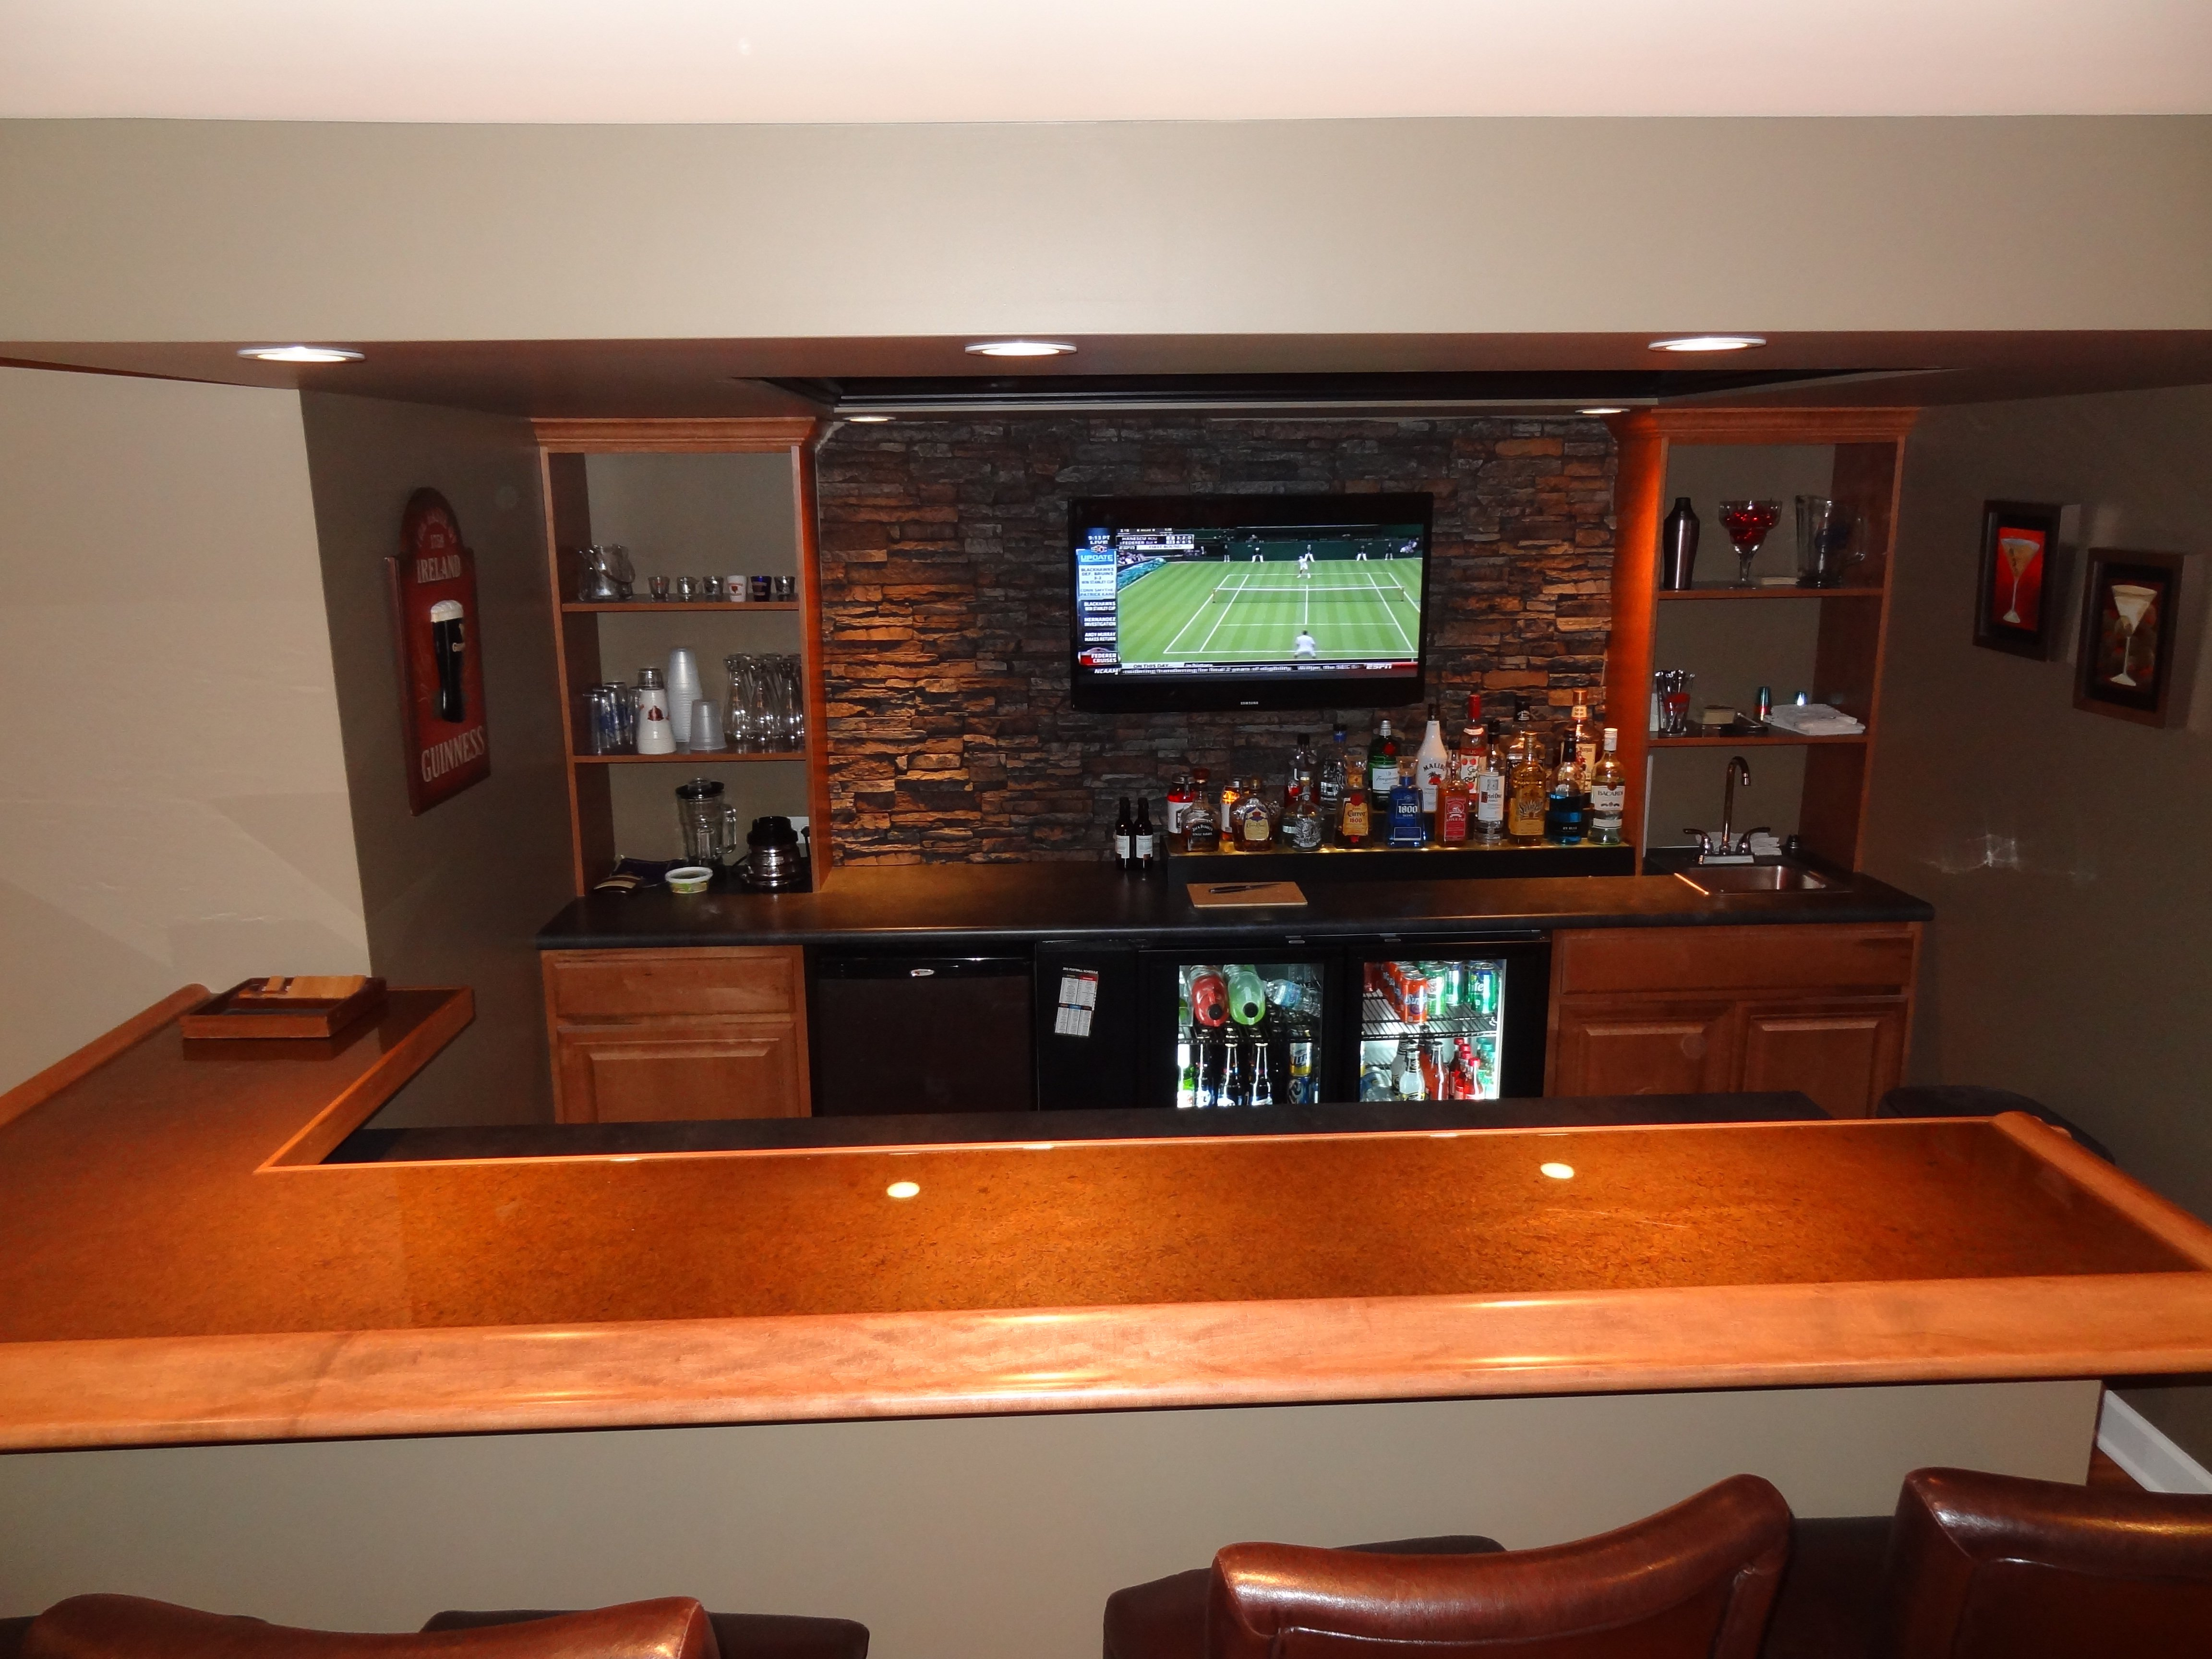 Looking For Bat Bar Photos Page 5 Avs Forum Home Theater Discussions And Reviews